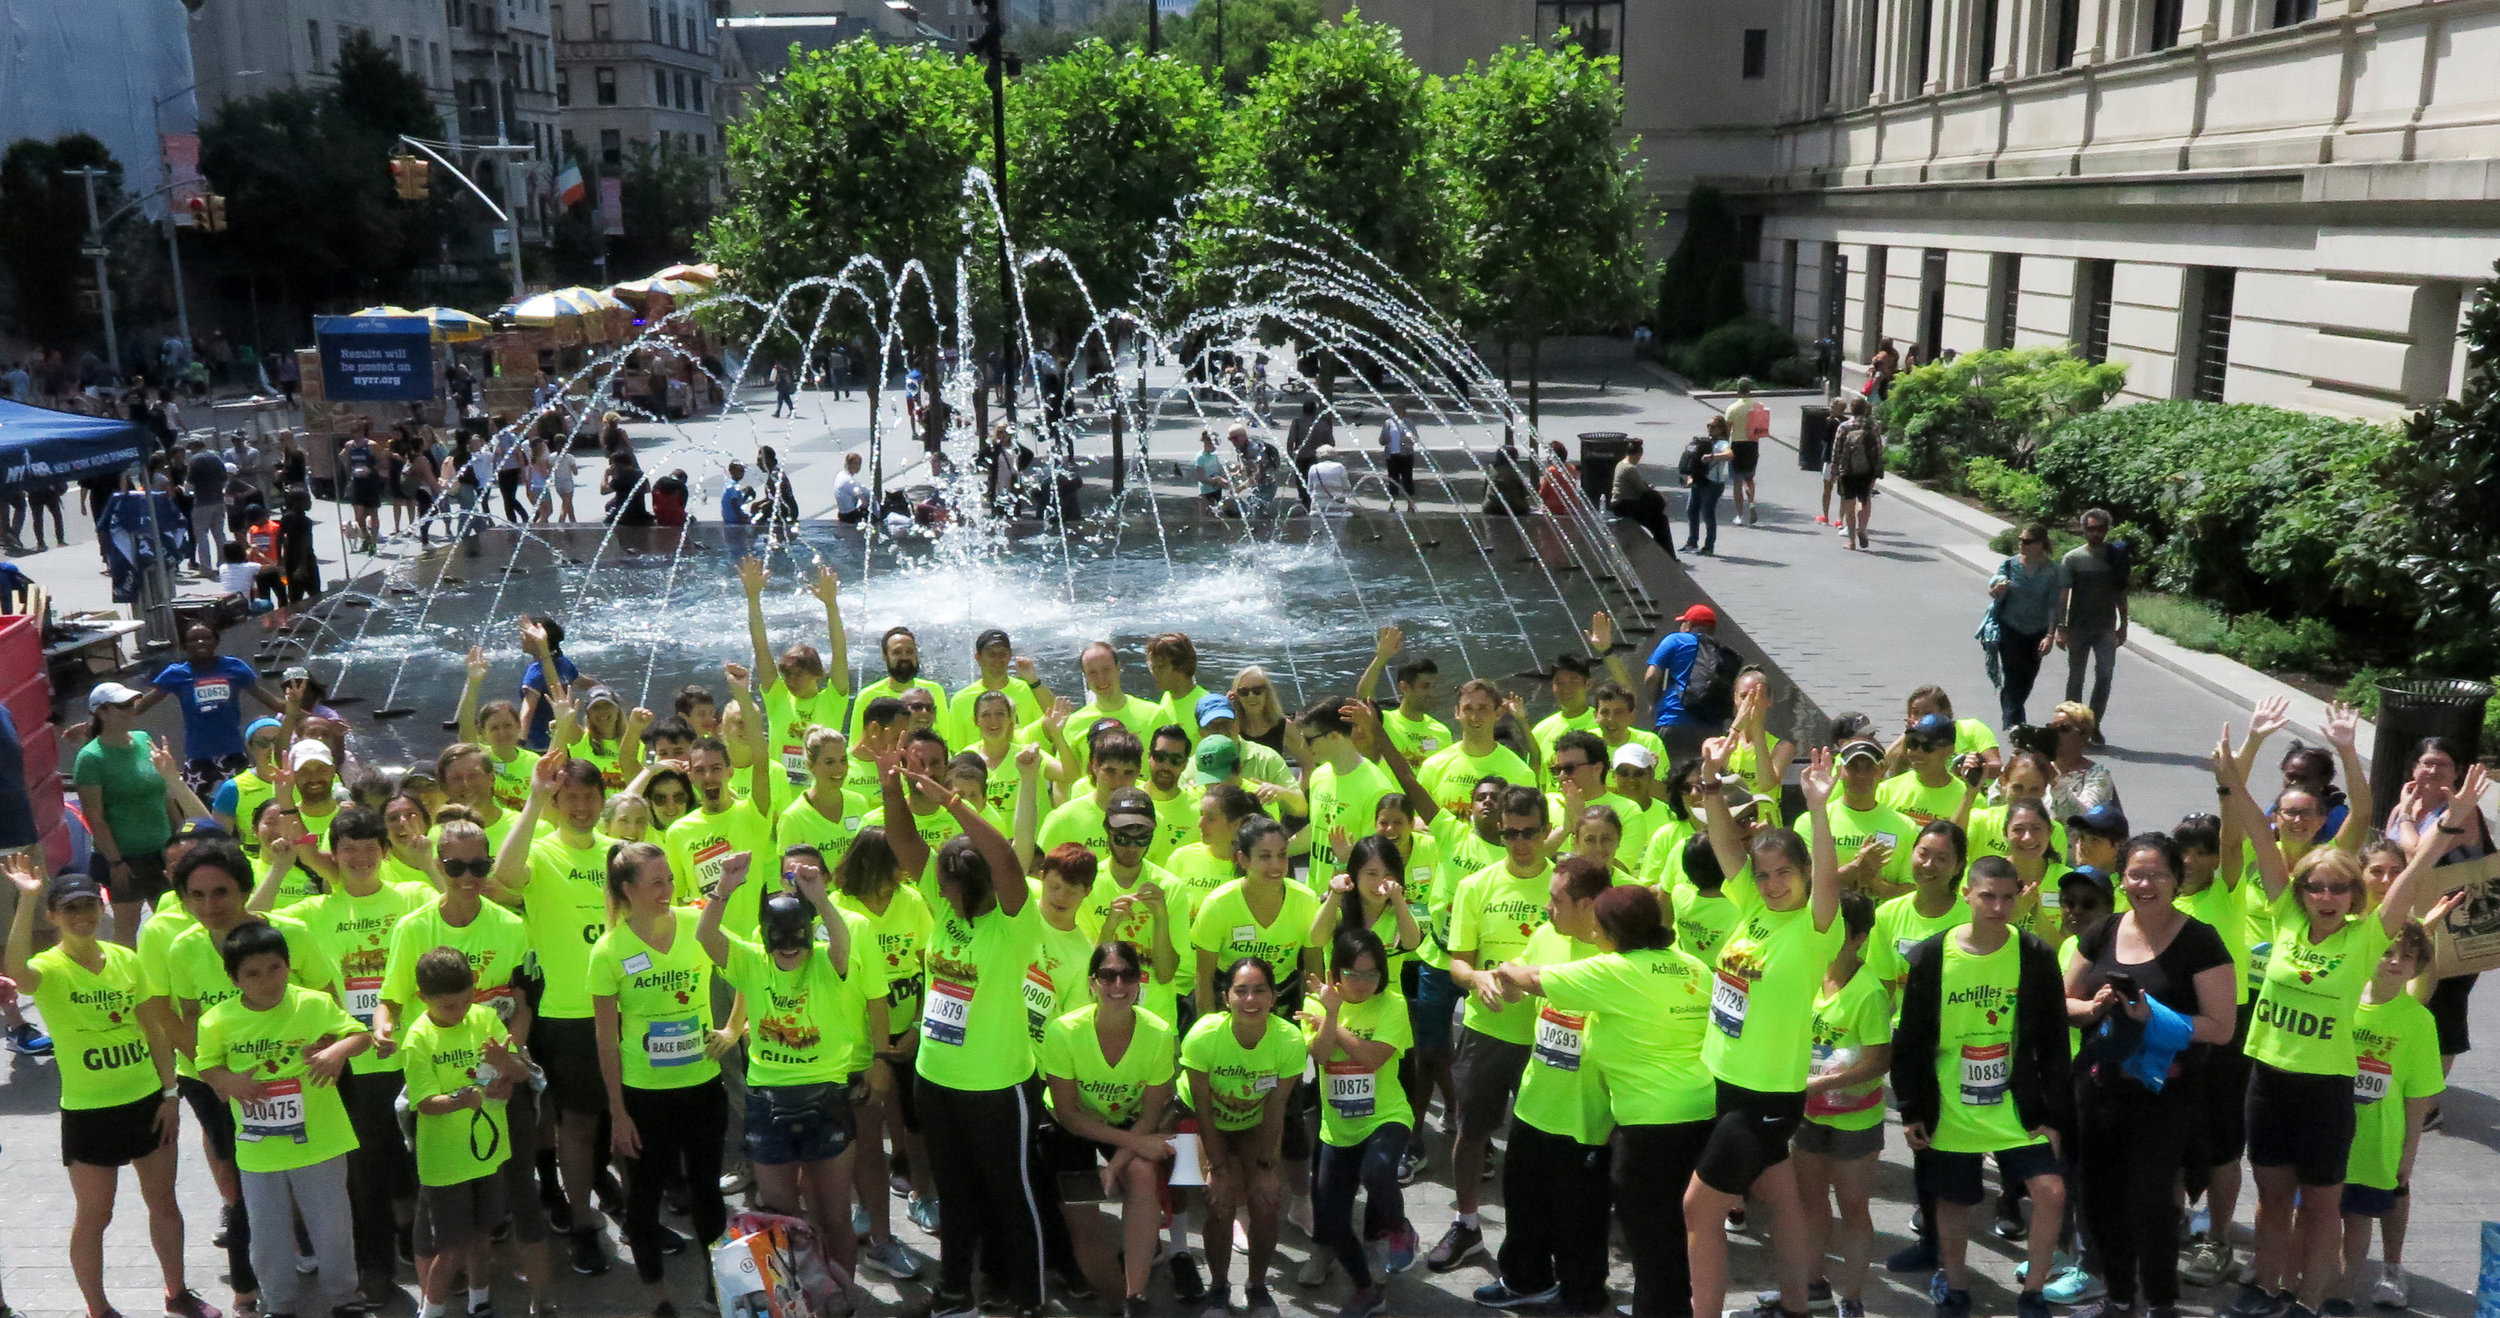 Above: Three cheers for Achilles Kids and their guides as they get ready to run the 2019 New Balance 5th Avenue Mile.